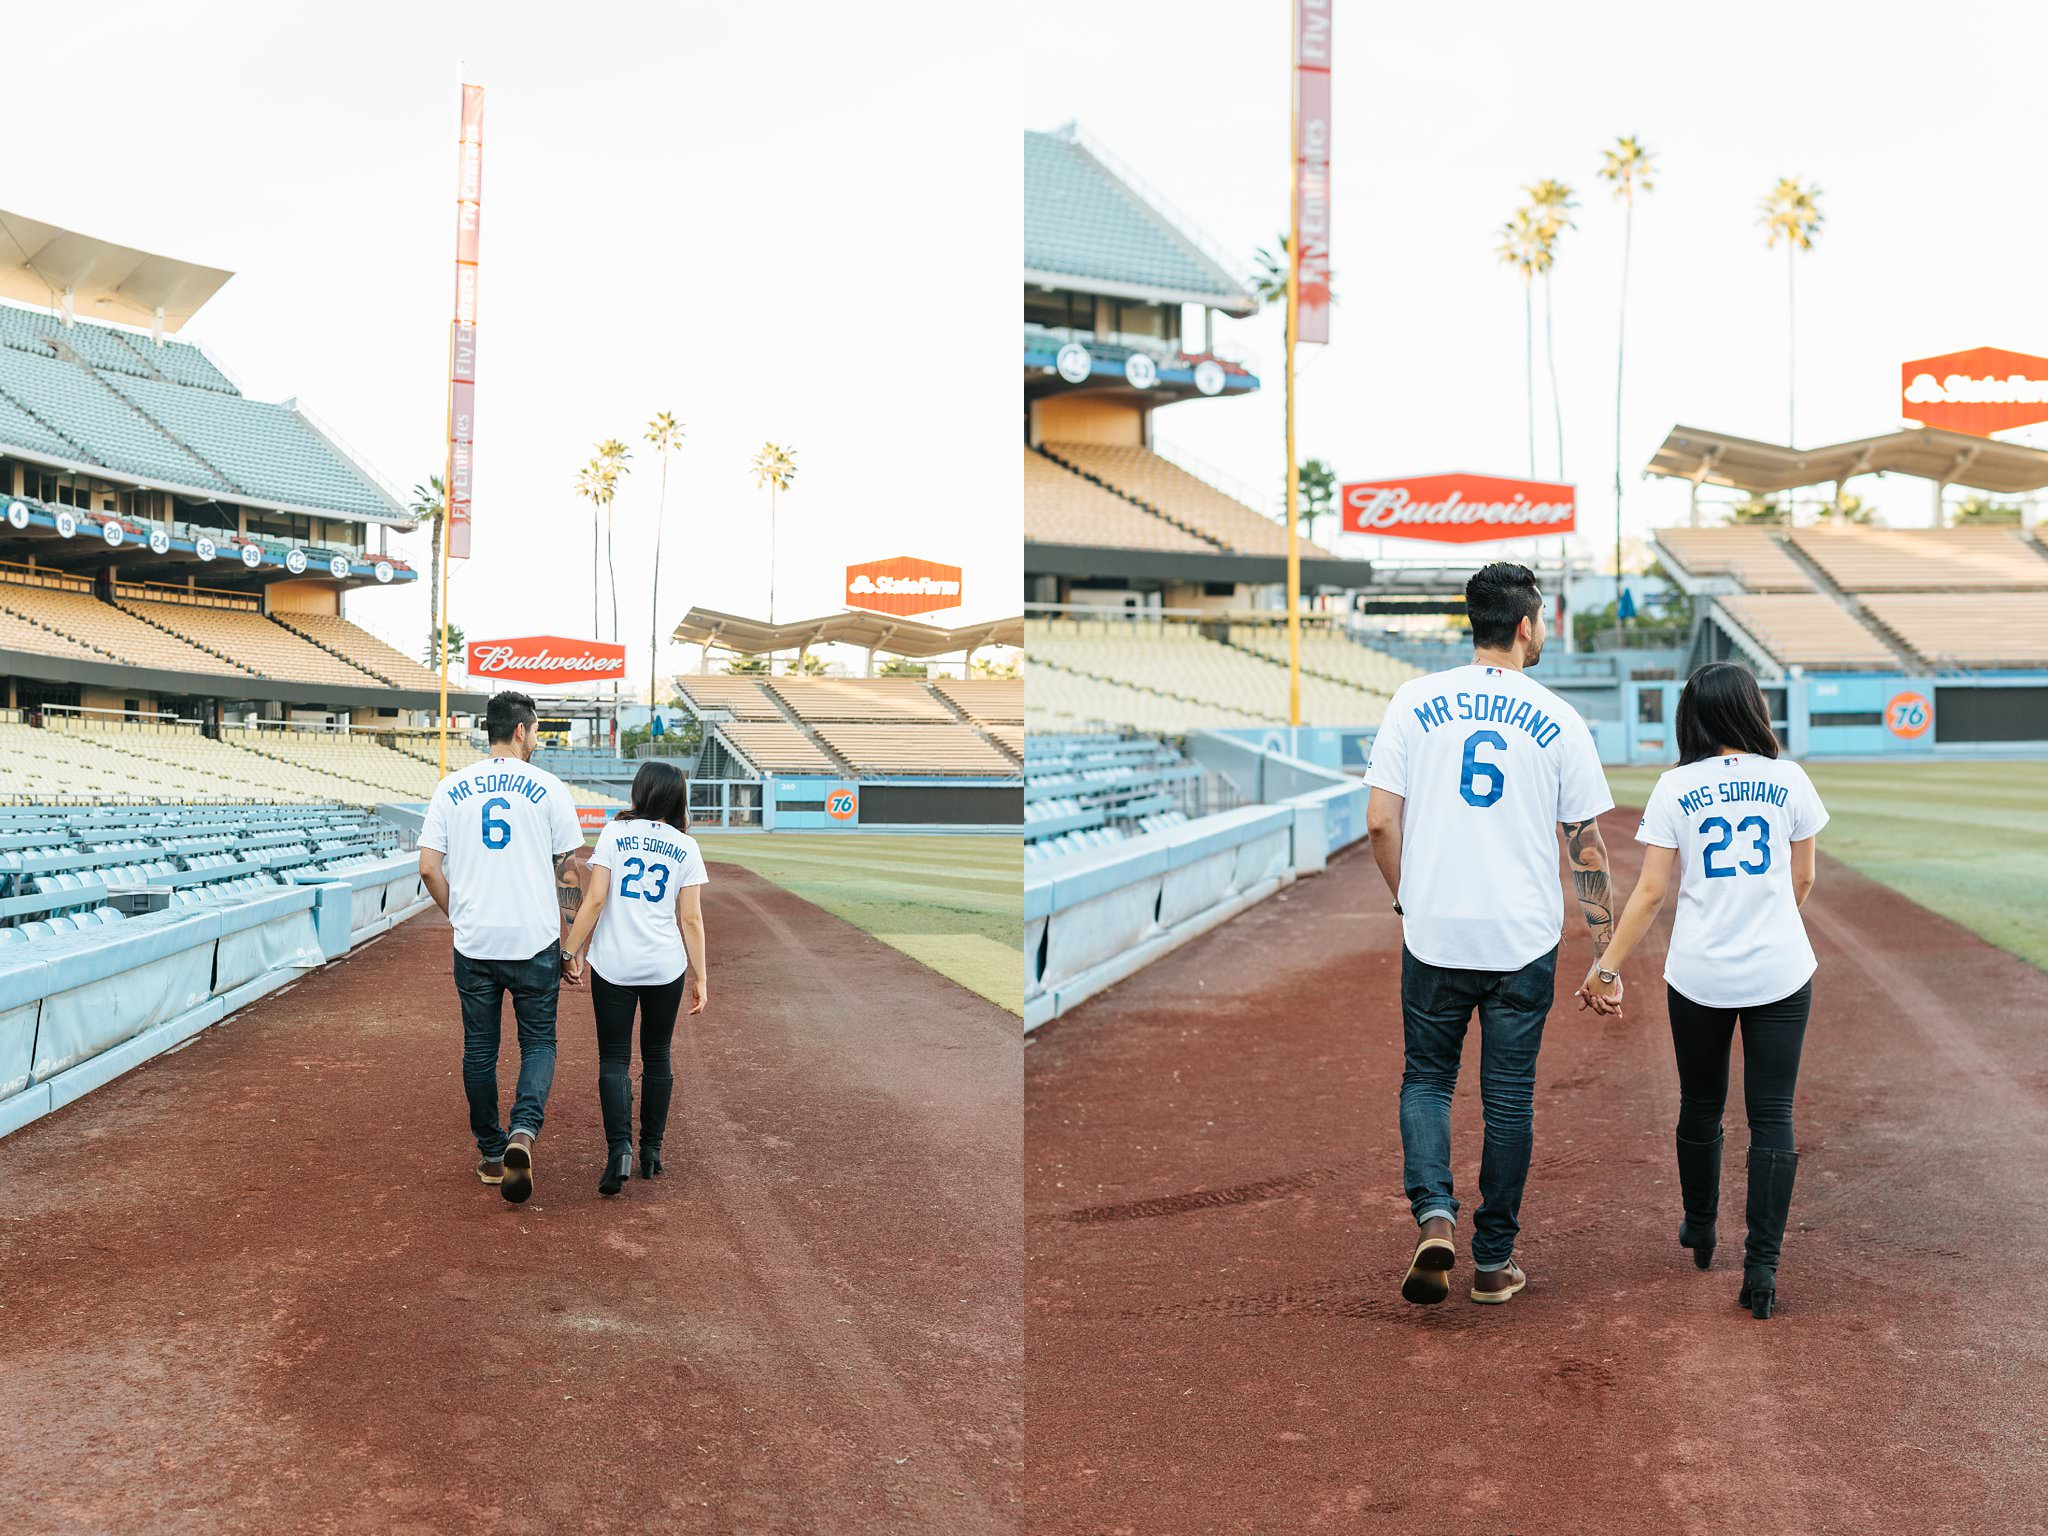 Romantic and Fun Dodger Fan Engagement Photos - Dodger Stadium - Los Angeles, CA - http://brittneyhannonphotography.com